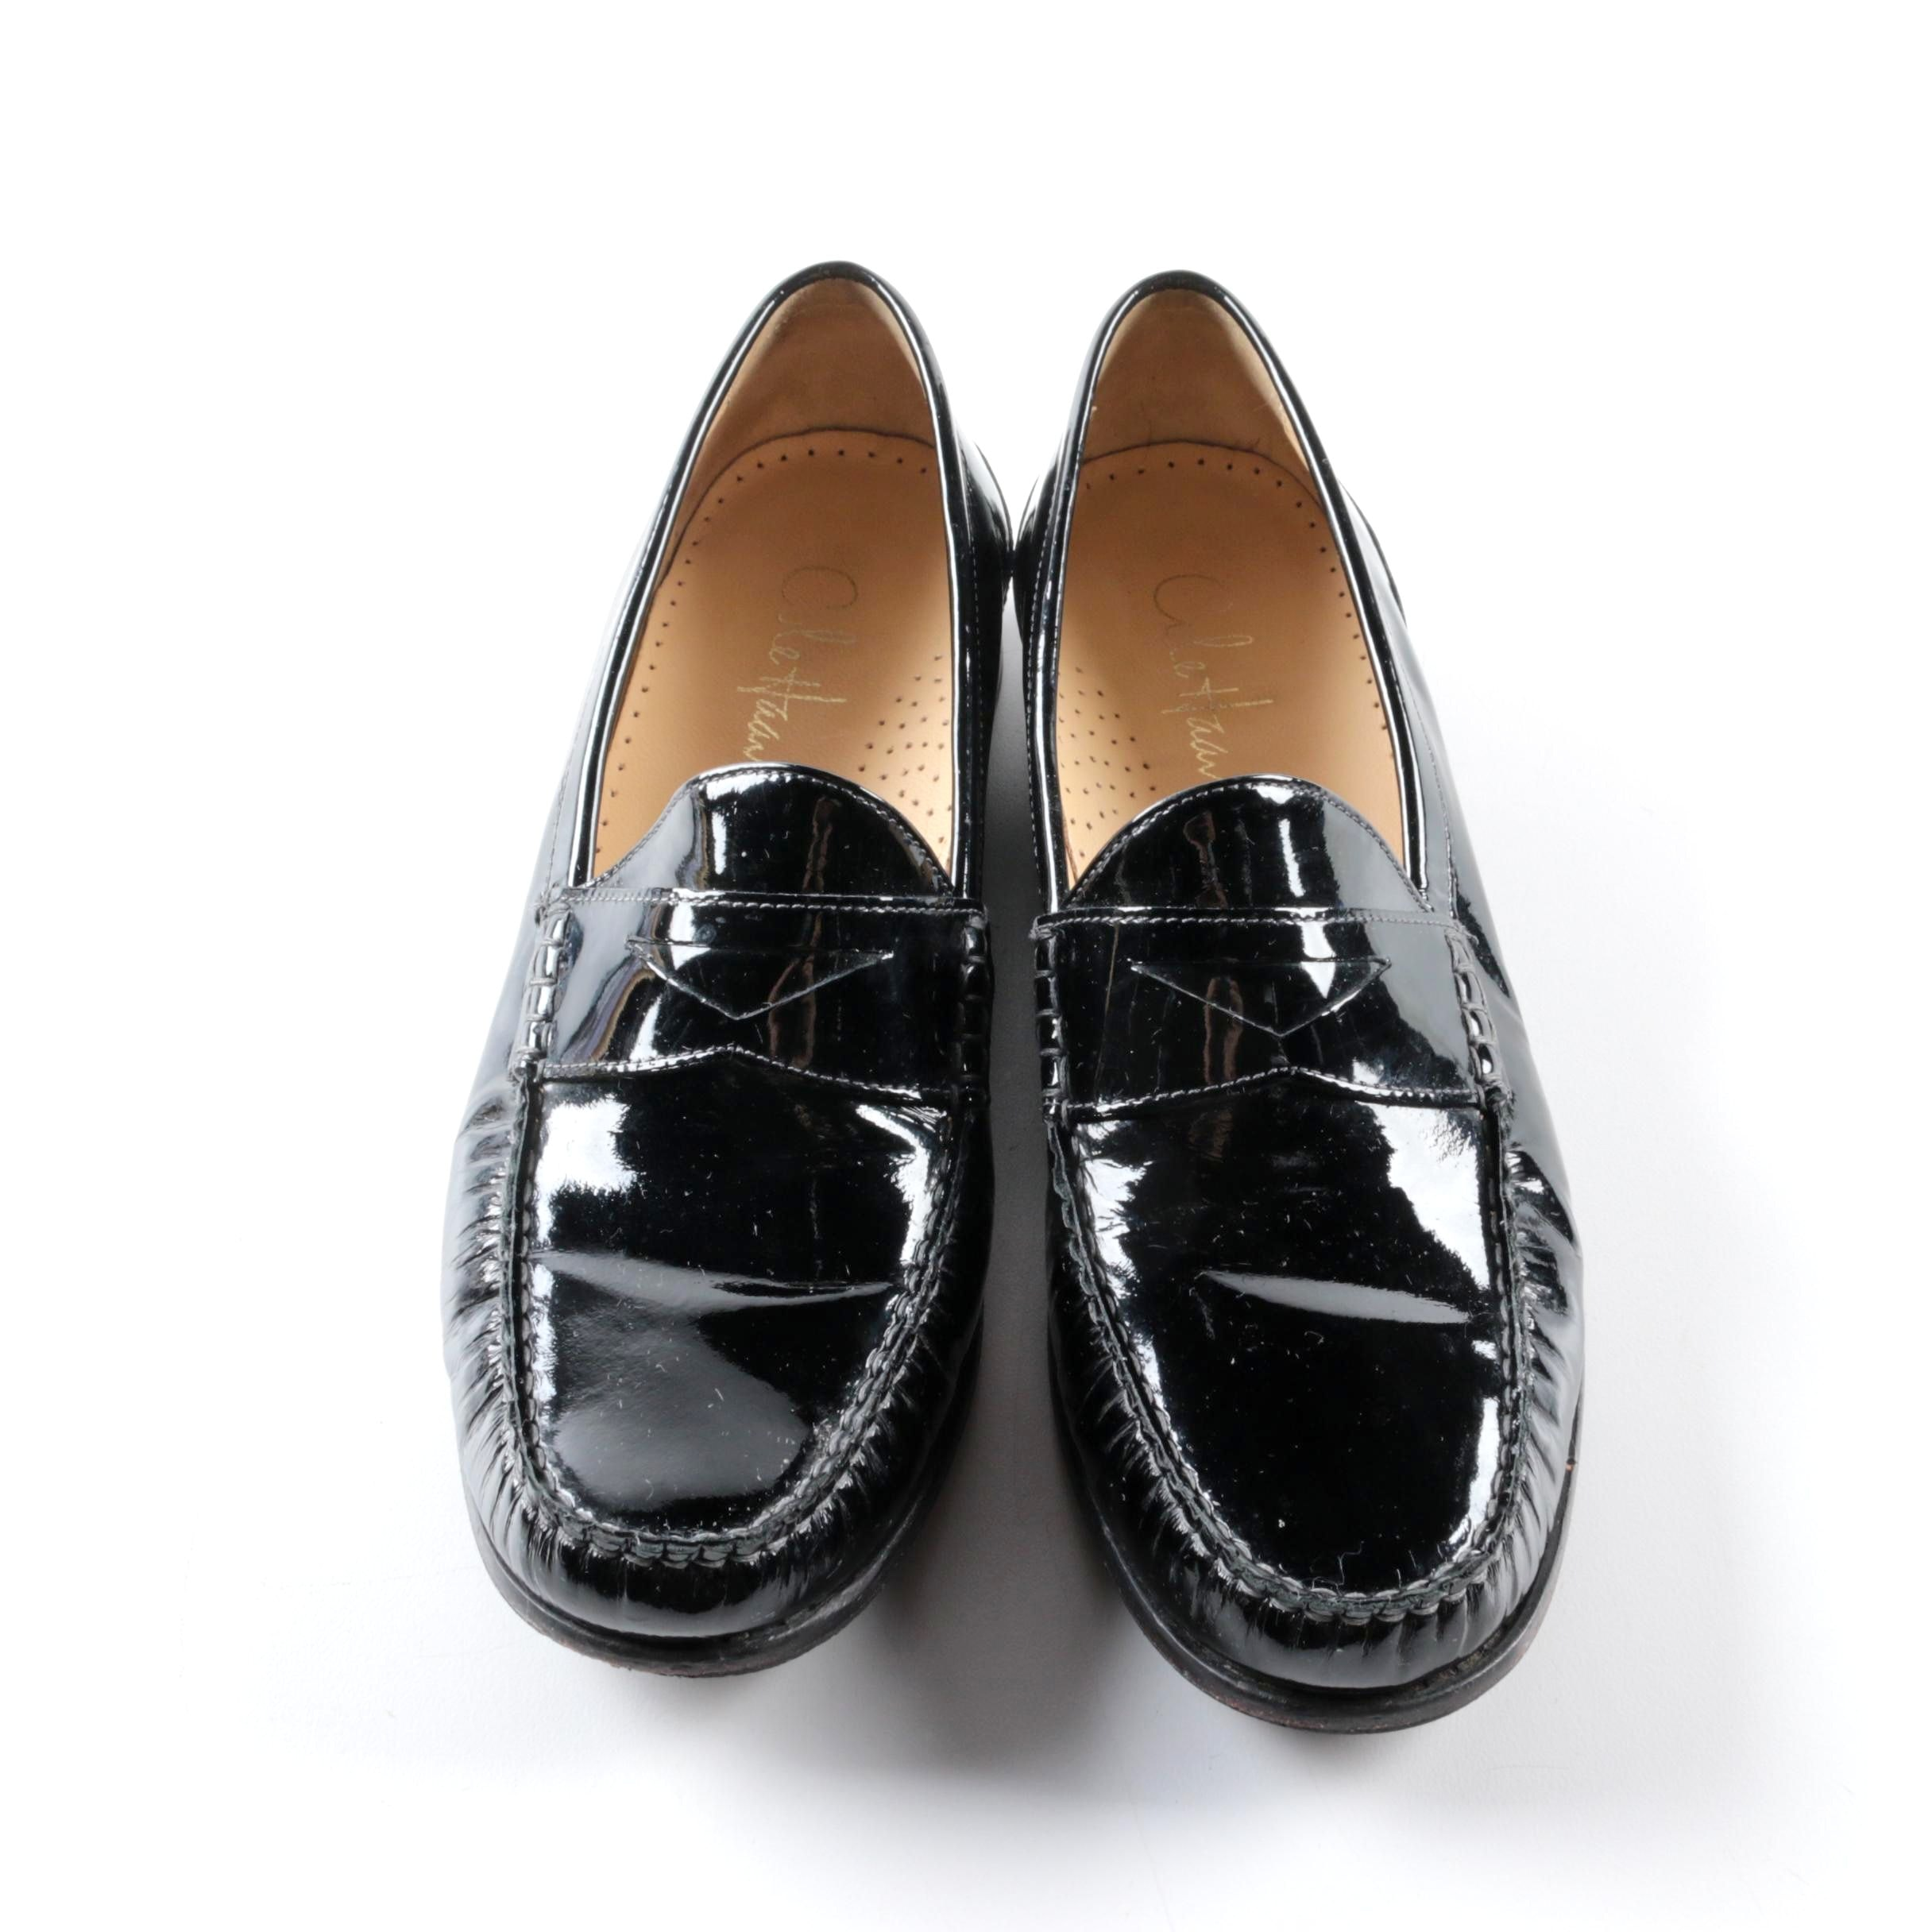 Women's Cole Haan Black Patent Leather Loafers